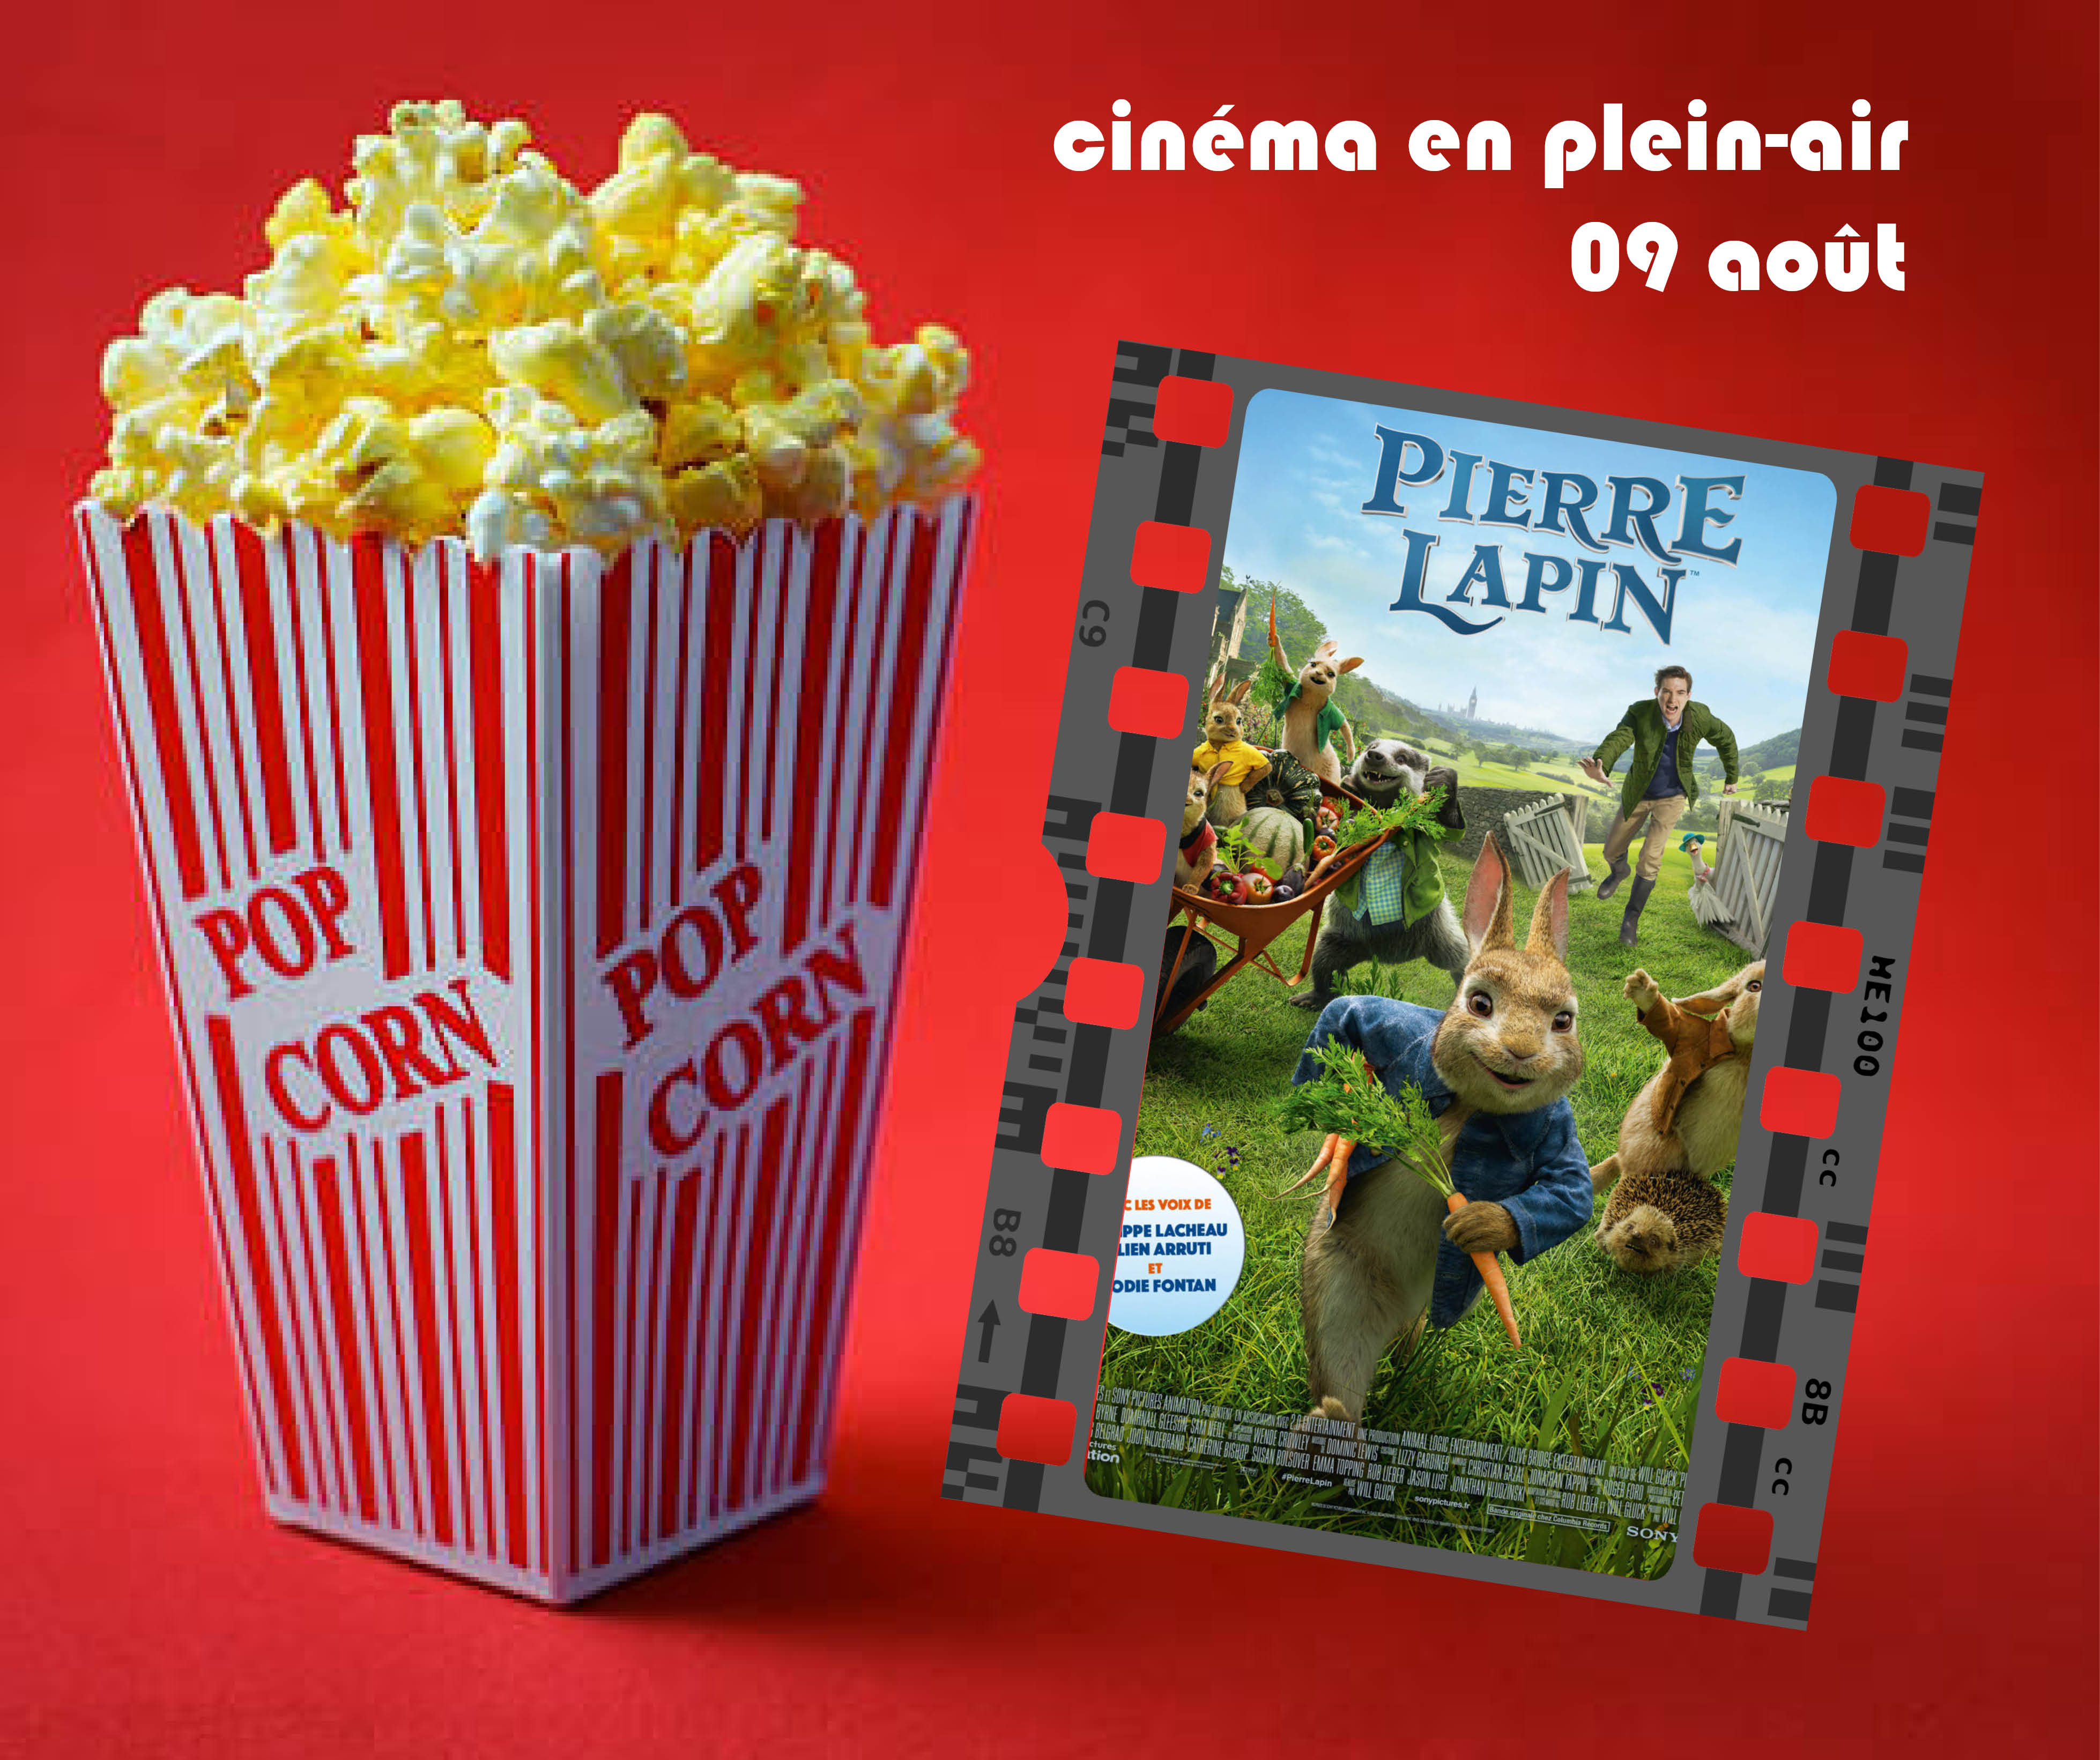 msm_pub_fb_cinema_0818